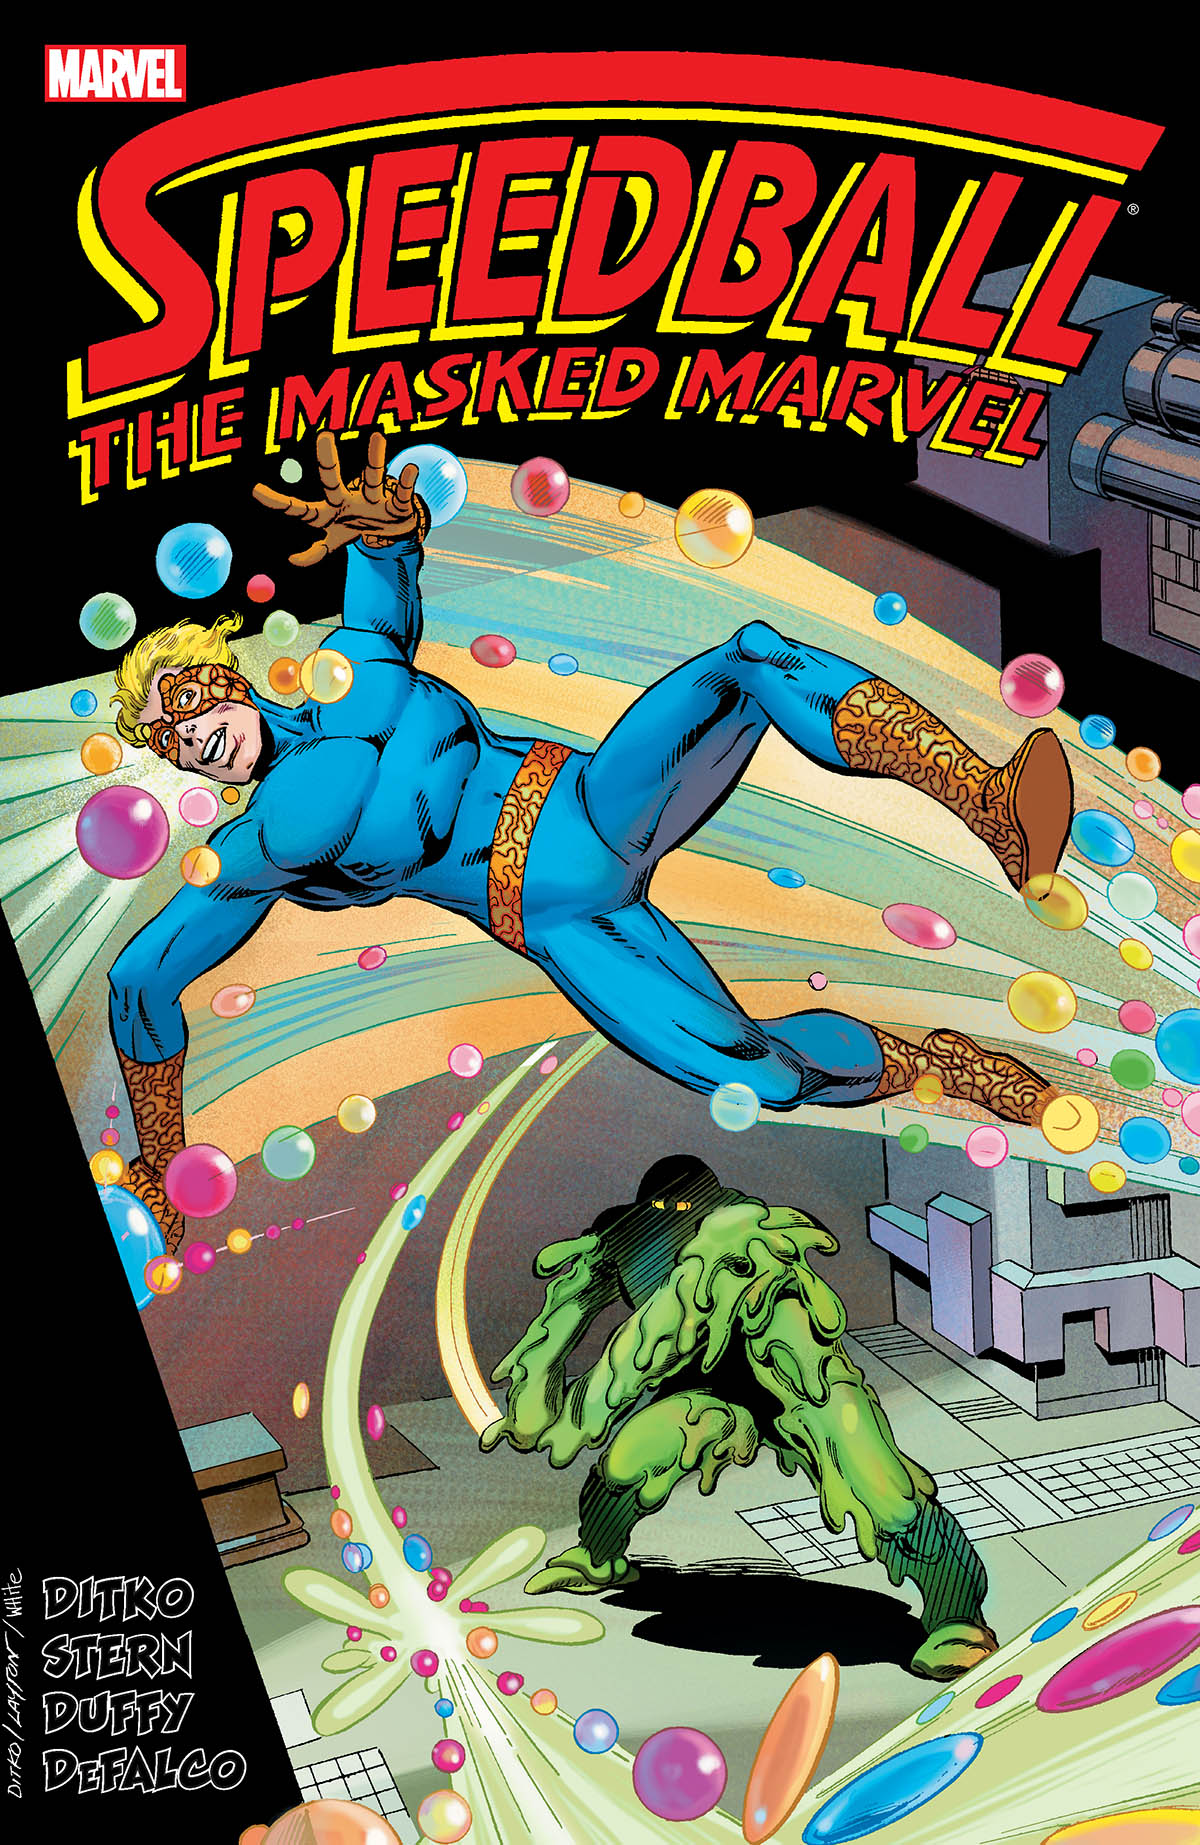 Speedball: The Masked Marvel (Trade Paperback)